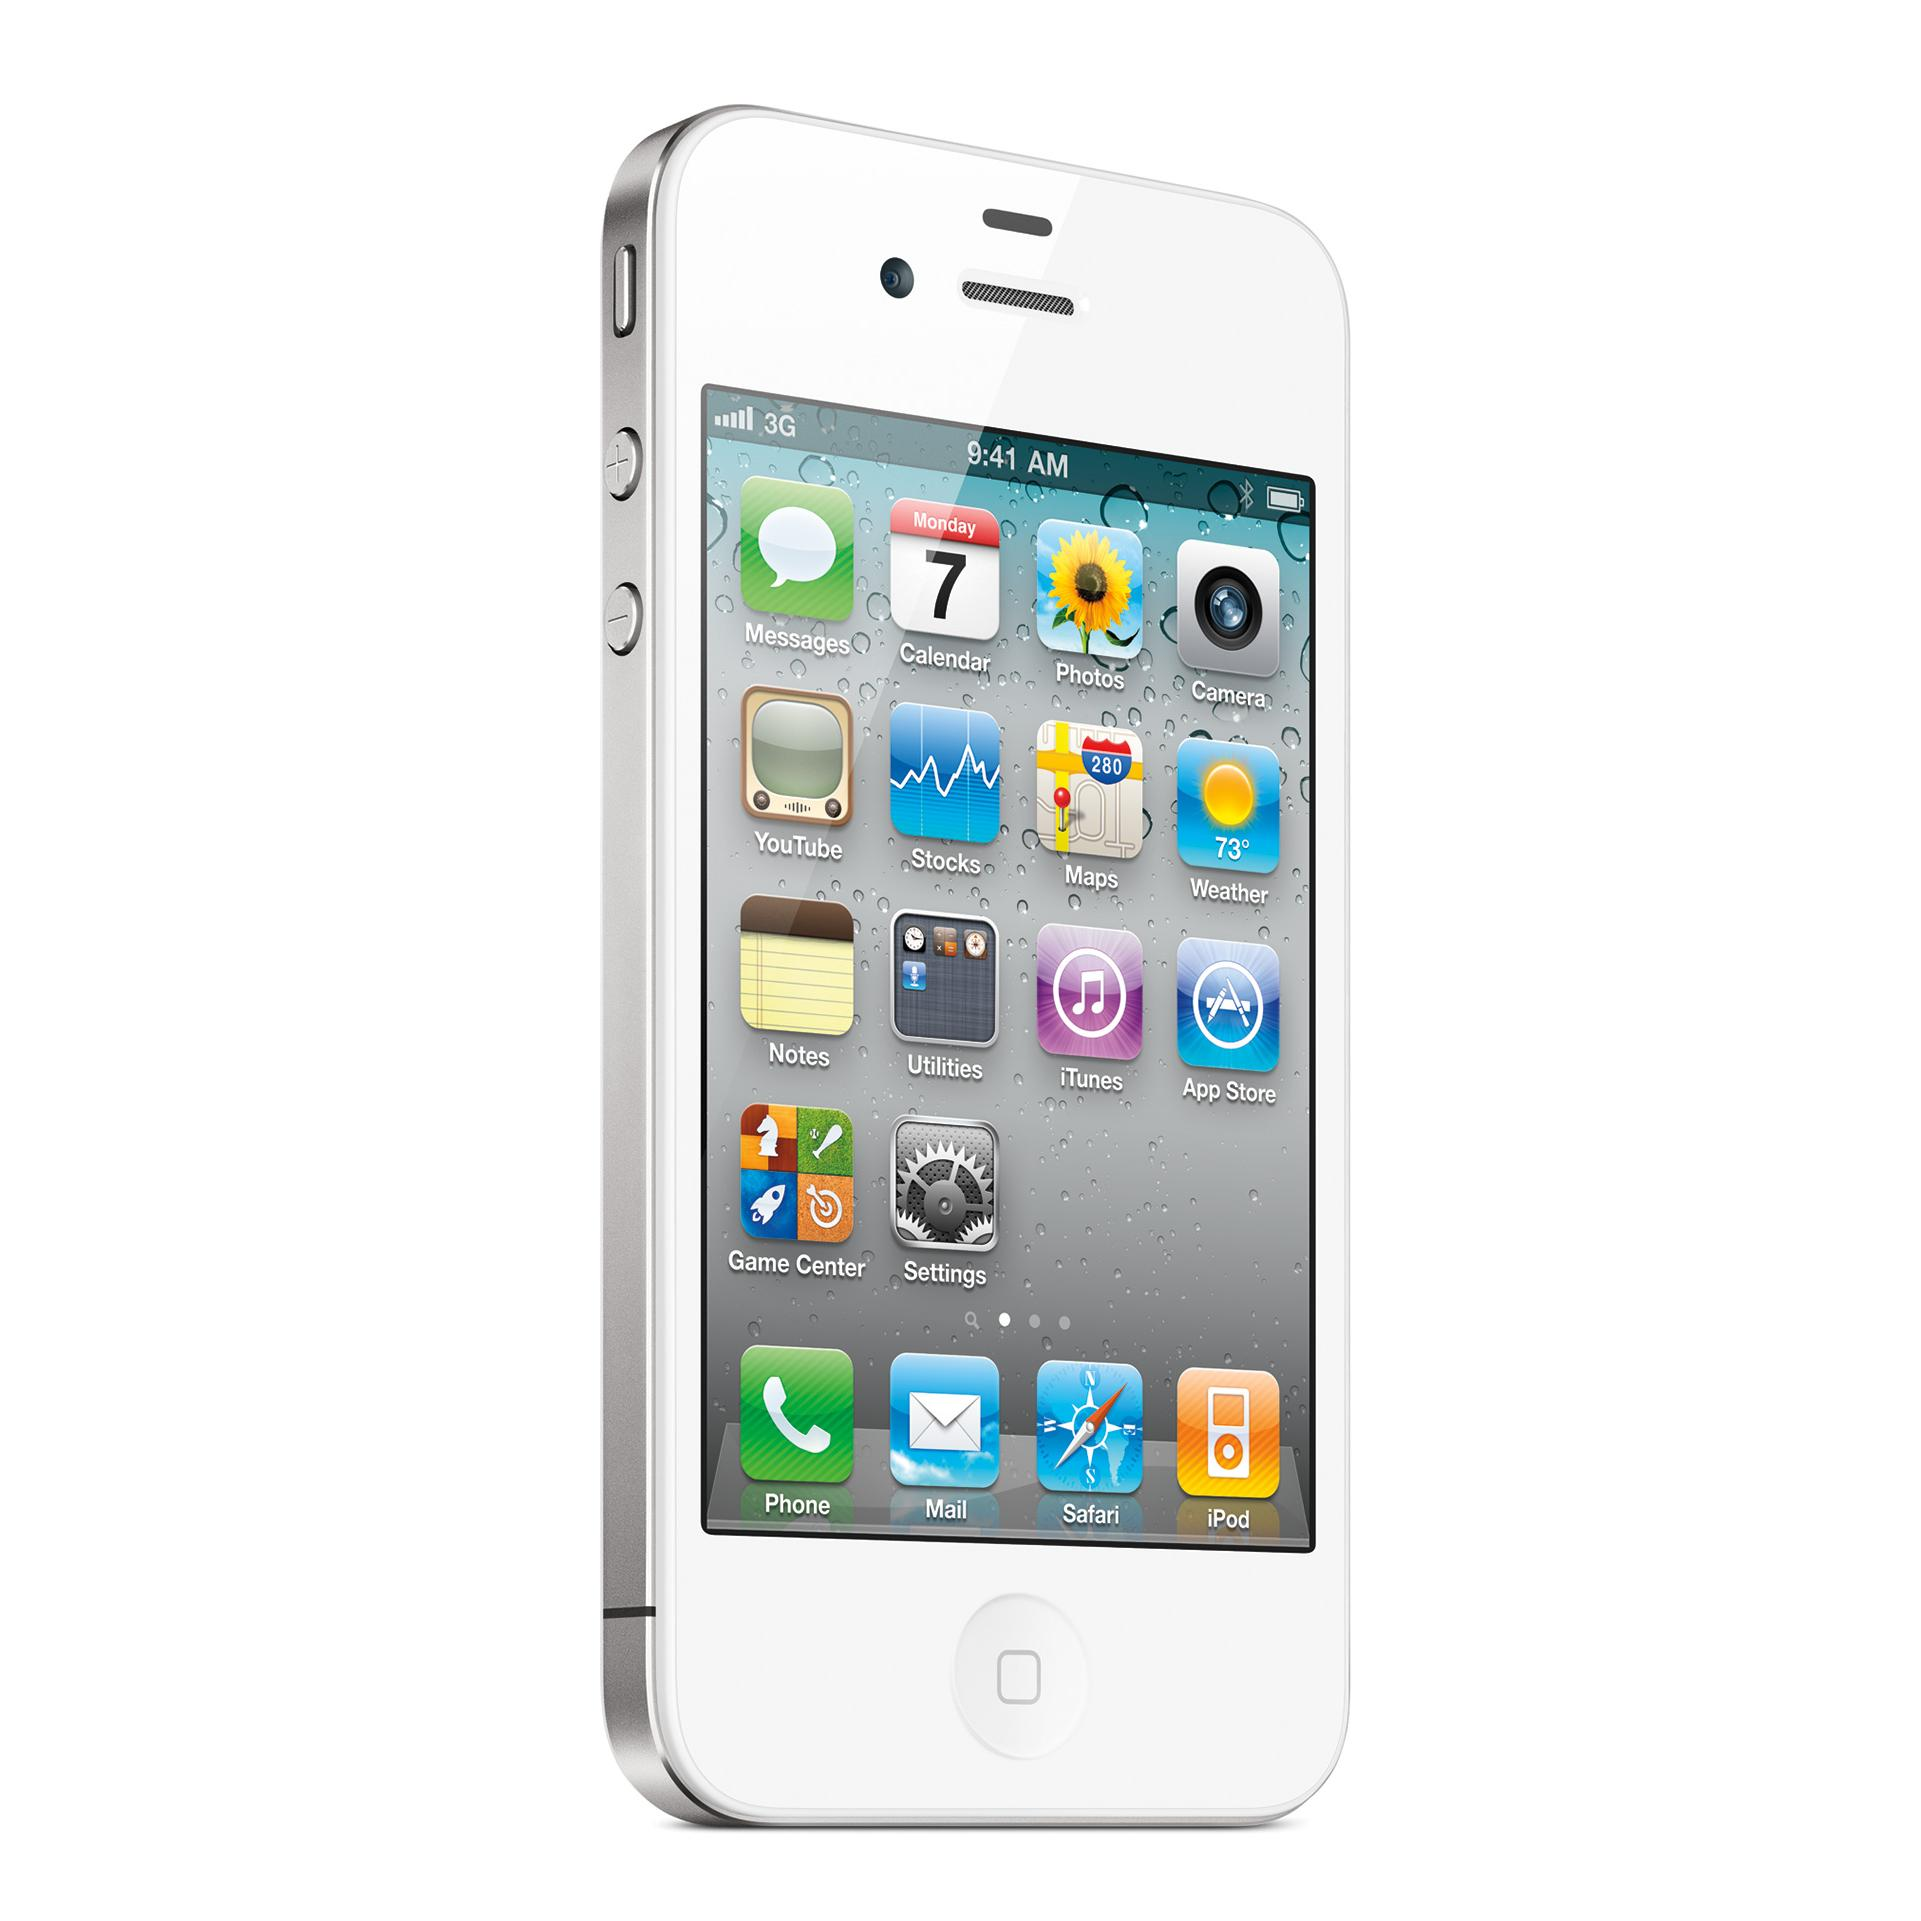 iPhone 4S 16 Gb - Blanco - Libre